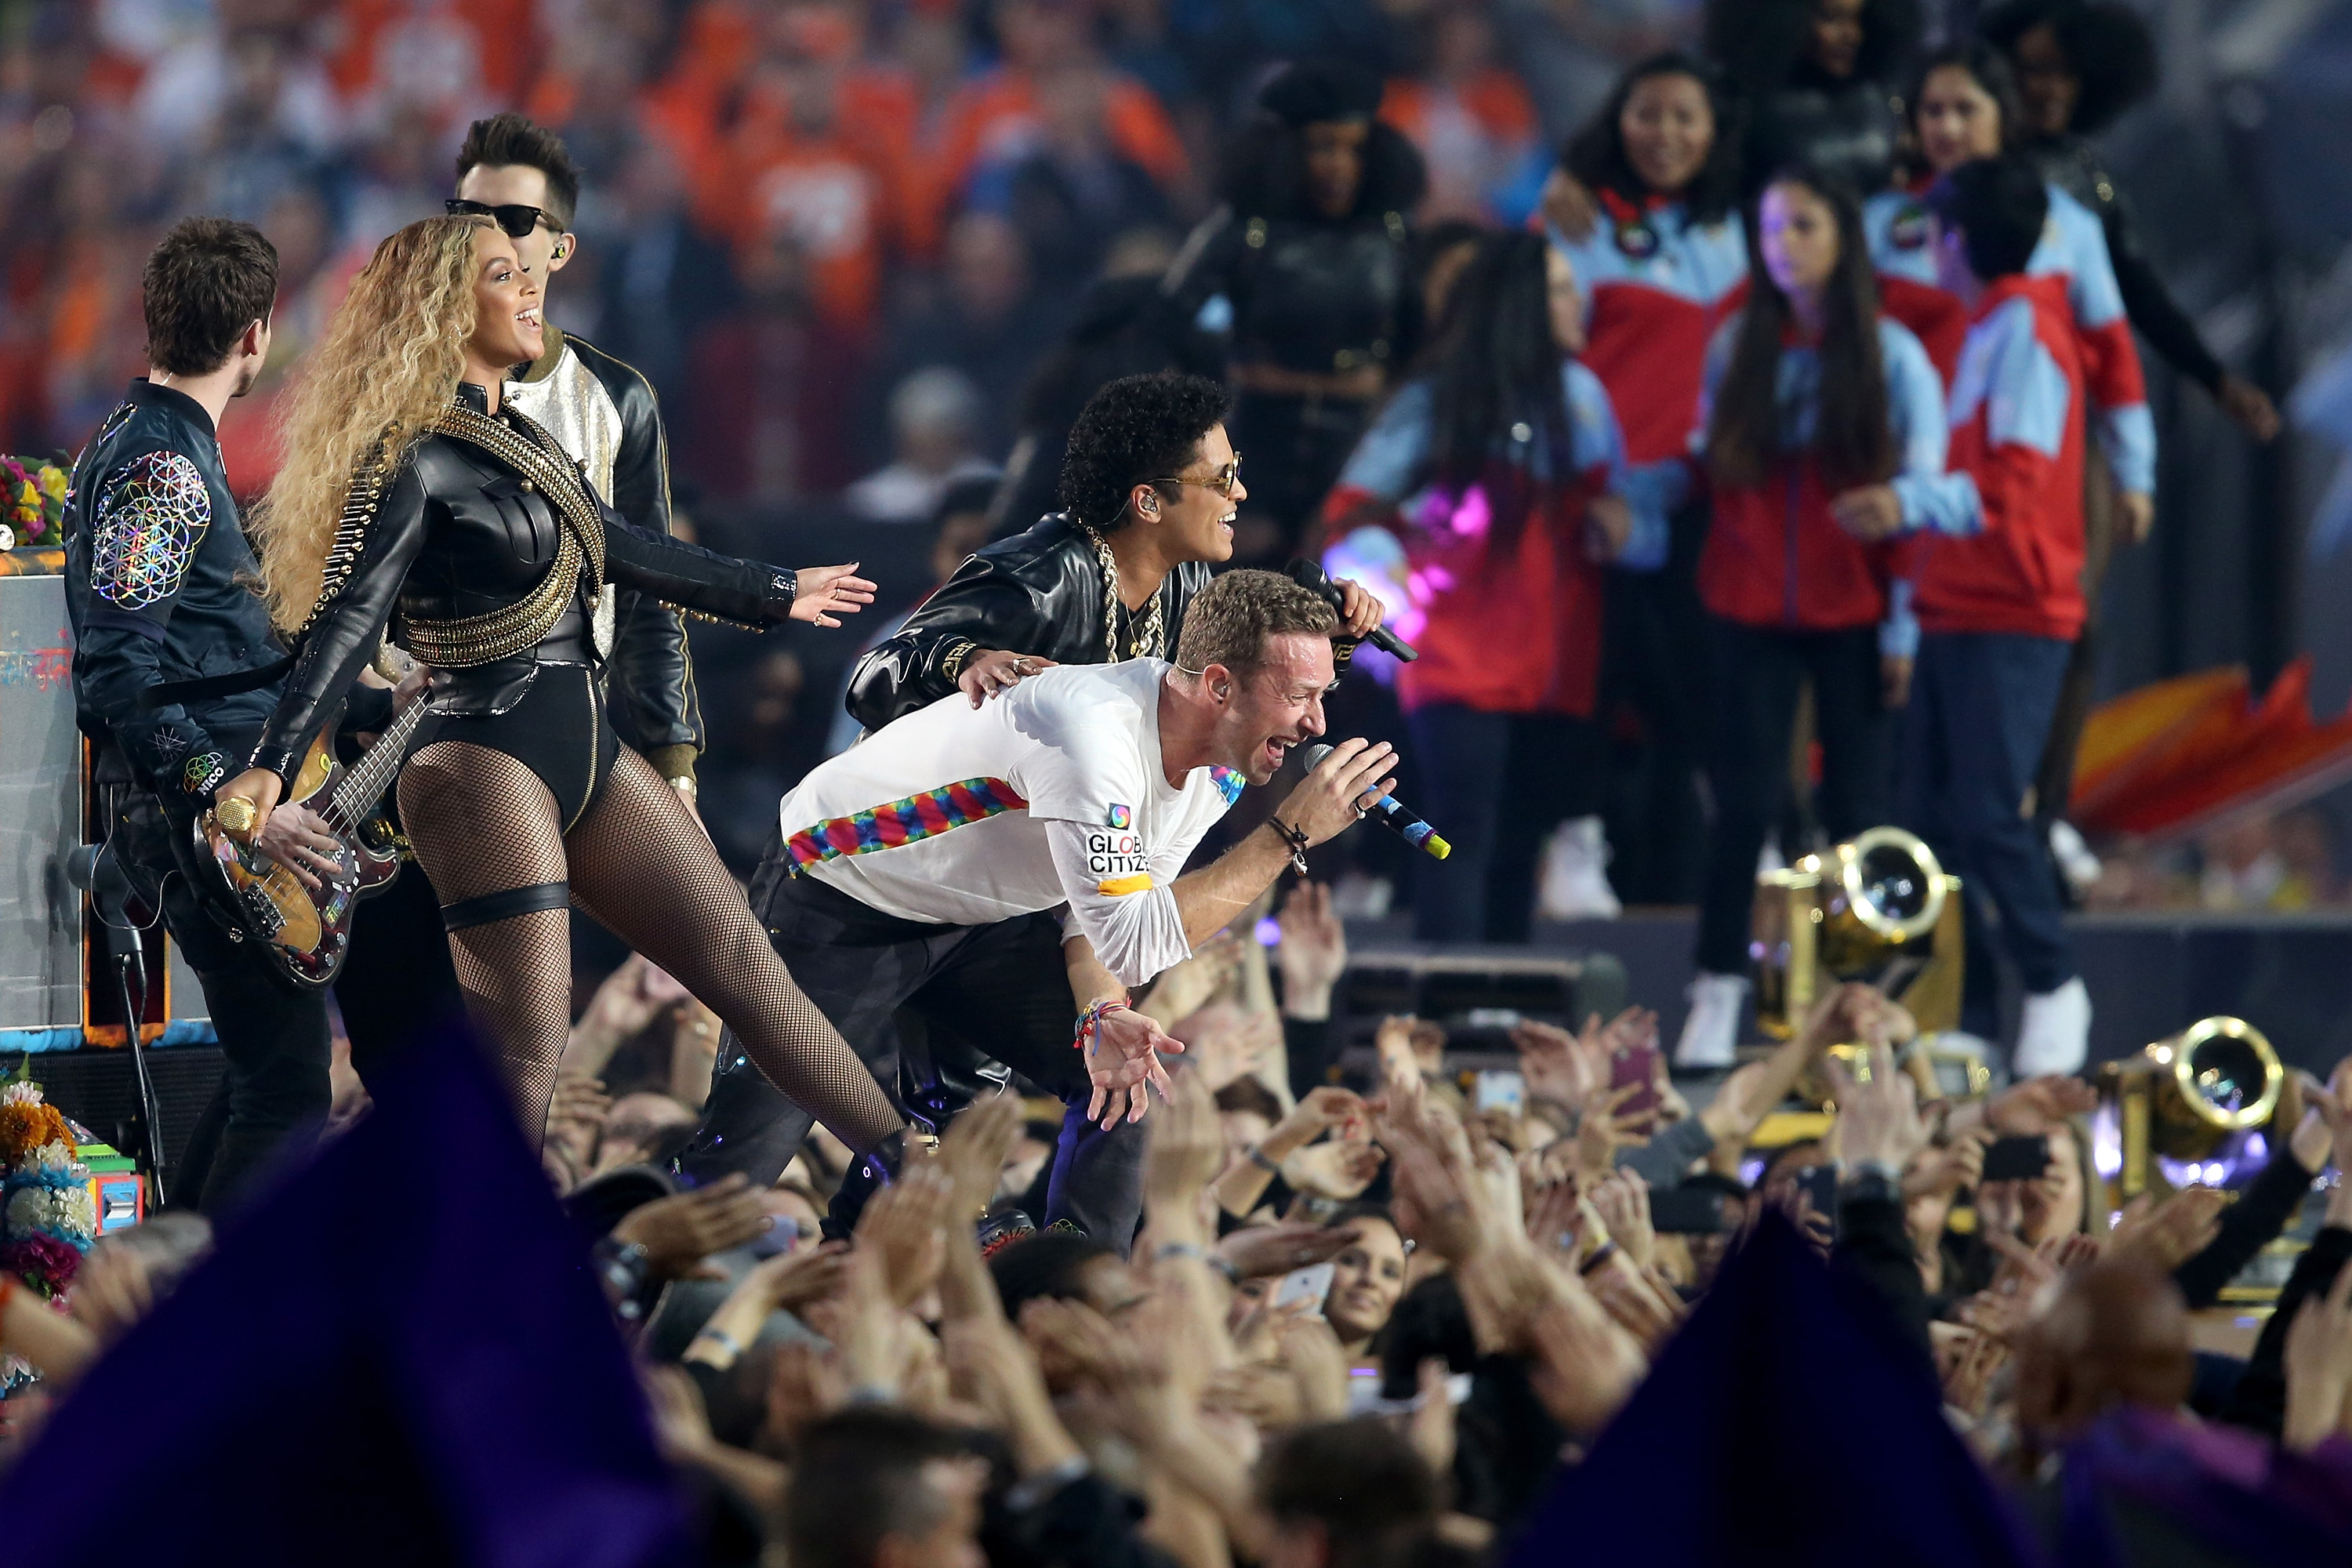 SANTA CLARA, CA - FEBRUARY 07: (L-R) Beyonce, Chris Martin of Coldplay, and Bruno Mars perform during the Pepsi Super Bowl 50 Halftime Show at Levi's Stadium on February 7, 2016 in Santa Clara, California. (Photo by Andy Lyons/Getty Images)